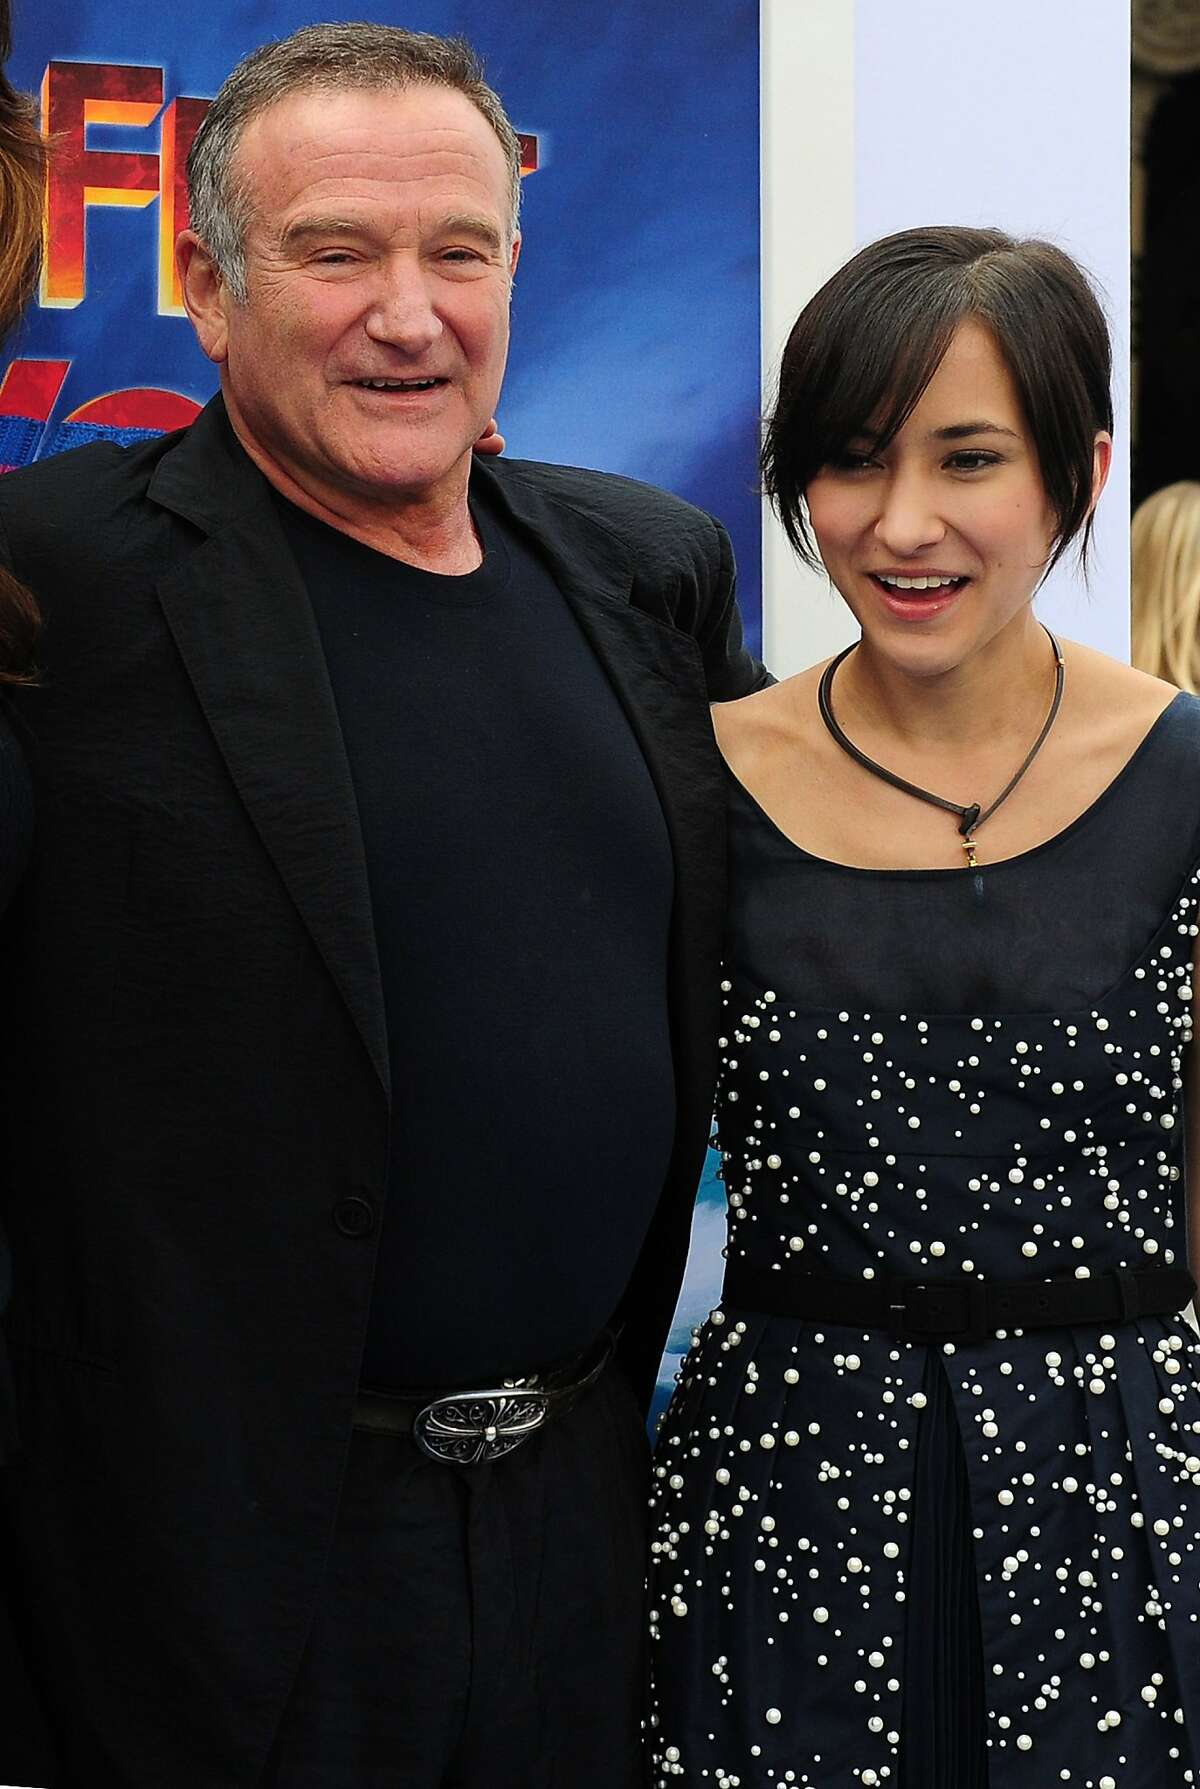 (FILES) This file photo taken on November 13, 2011 shows US actor Robin Williams and his daughter Zelda posing on arrival for the world premiere of the movie 'Happy Feet Two' in Hollywood in southern California. Oscar-winning actor and comedian Robin Williams died from suspected suicide on August 11, 2014 after battling depression, triggering an outpouring of tributes to one of the most beloved entertainers of his generation. AFP PHOTO / FILES / Frederic J. BROWNFREDERIC J. BROWN/AFP/Getty Images